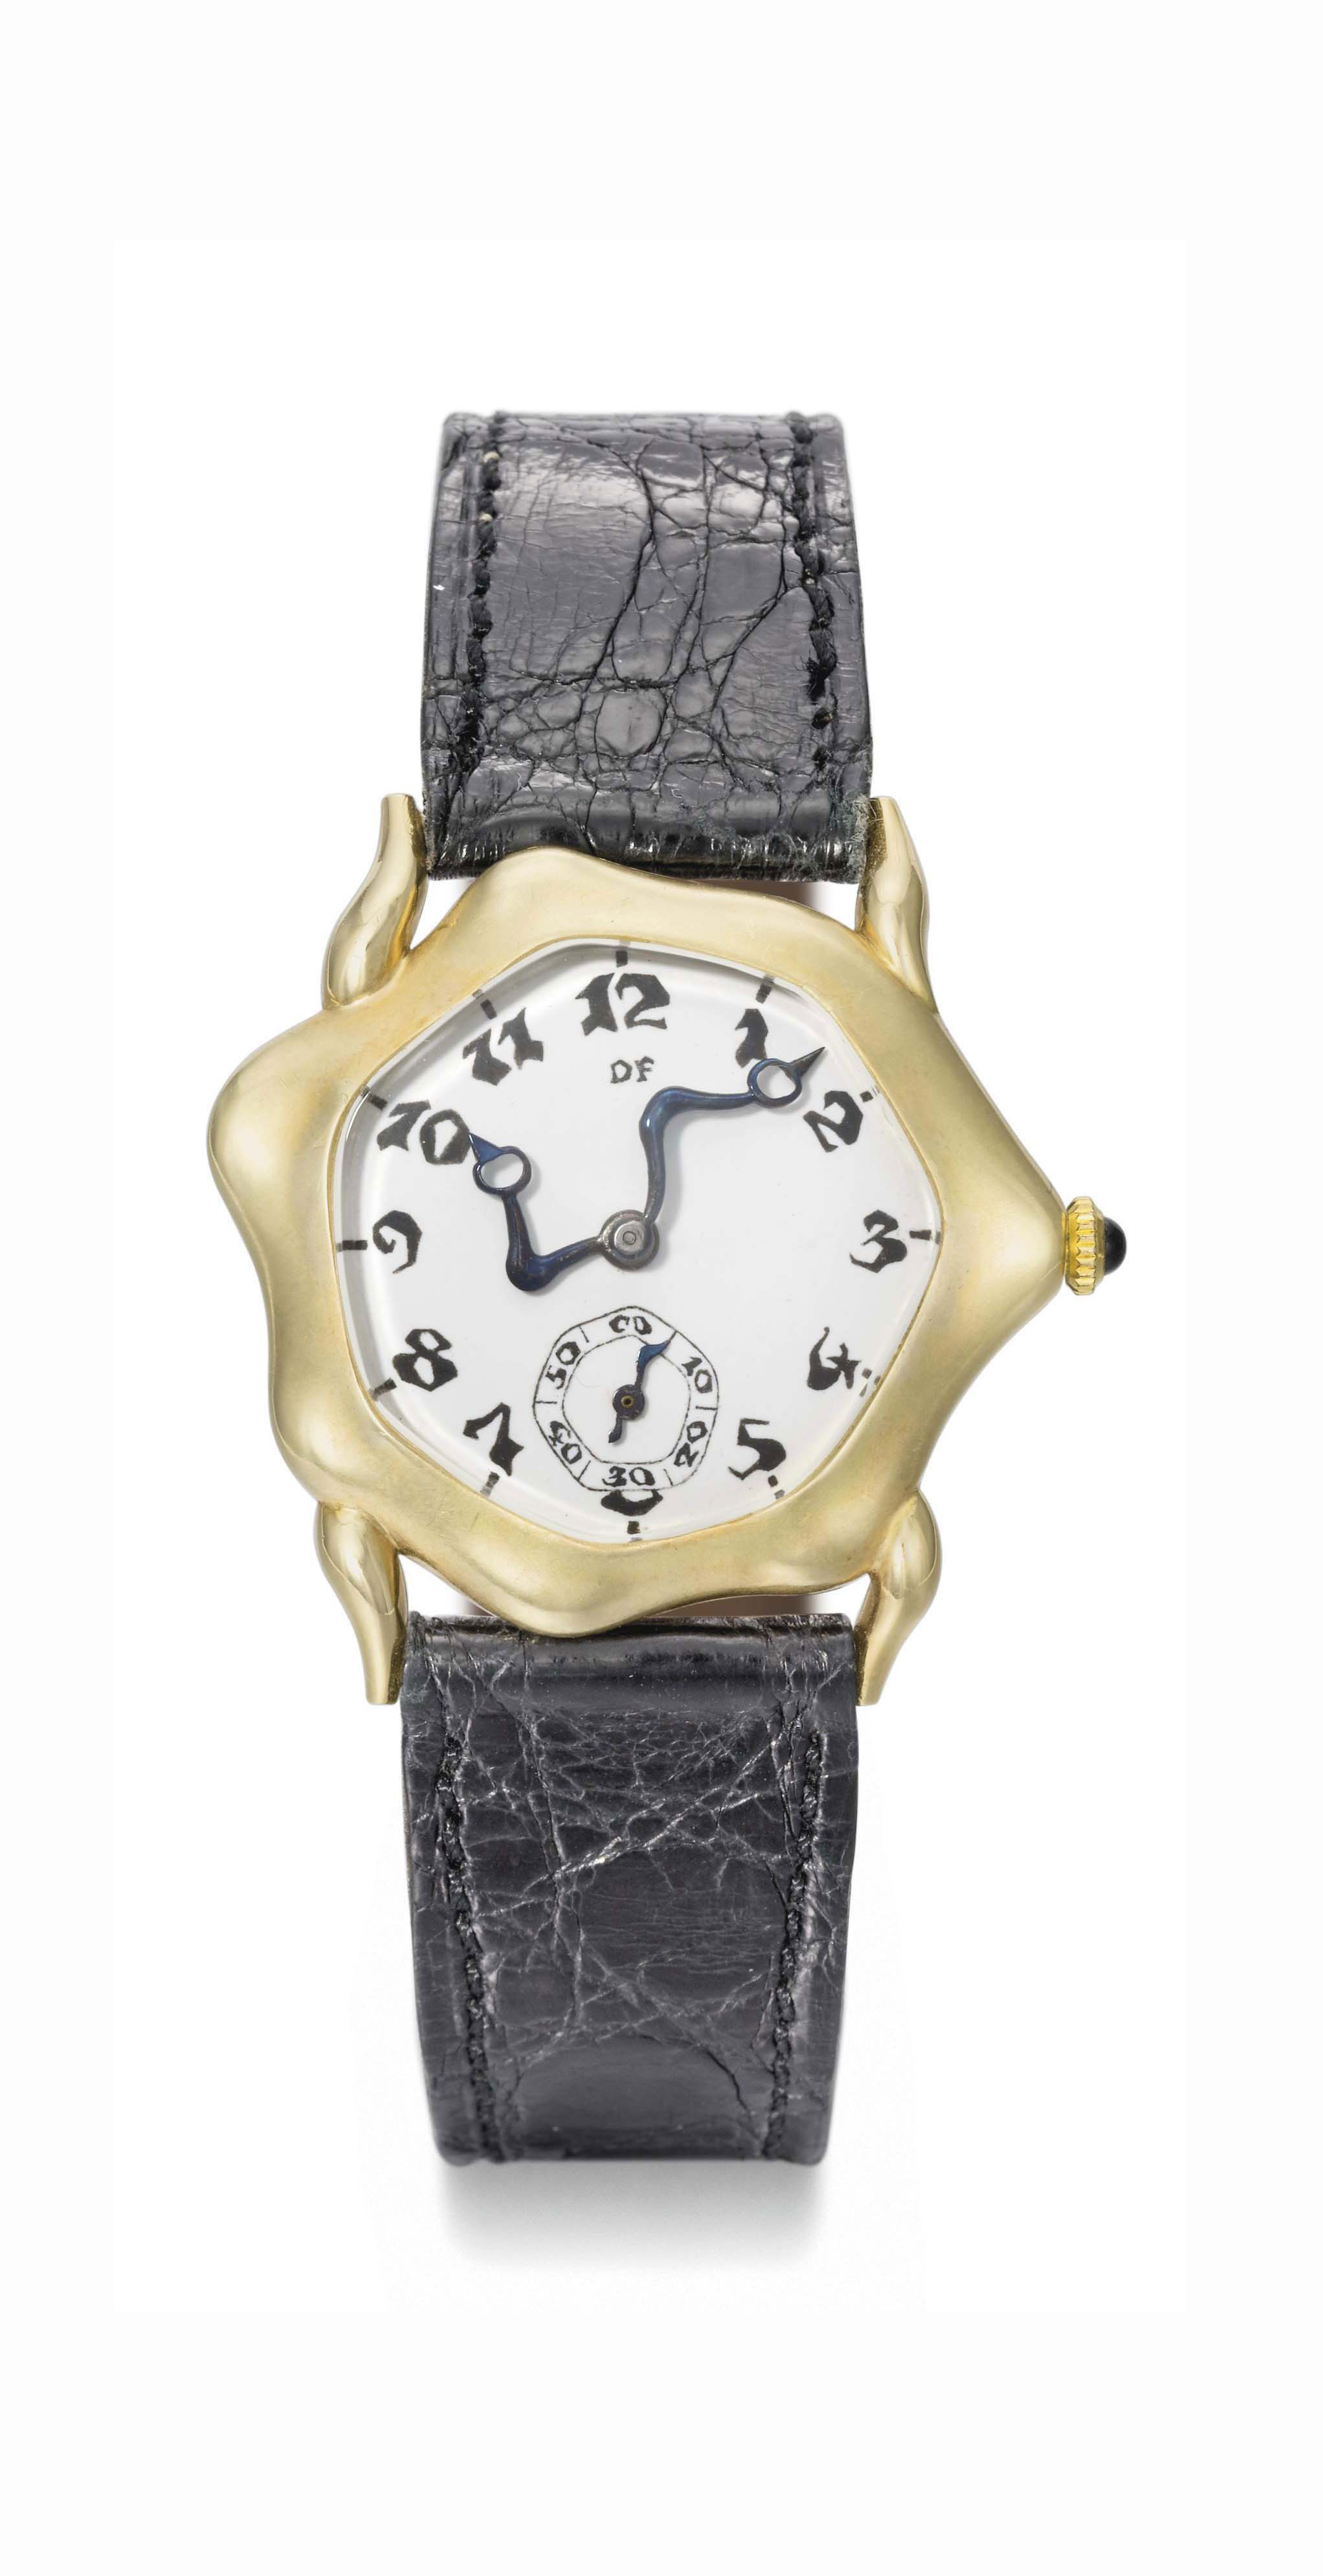 Falcone. An extremely rare 18K gold asymmetrical wristwatch with enamel dial